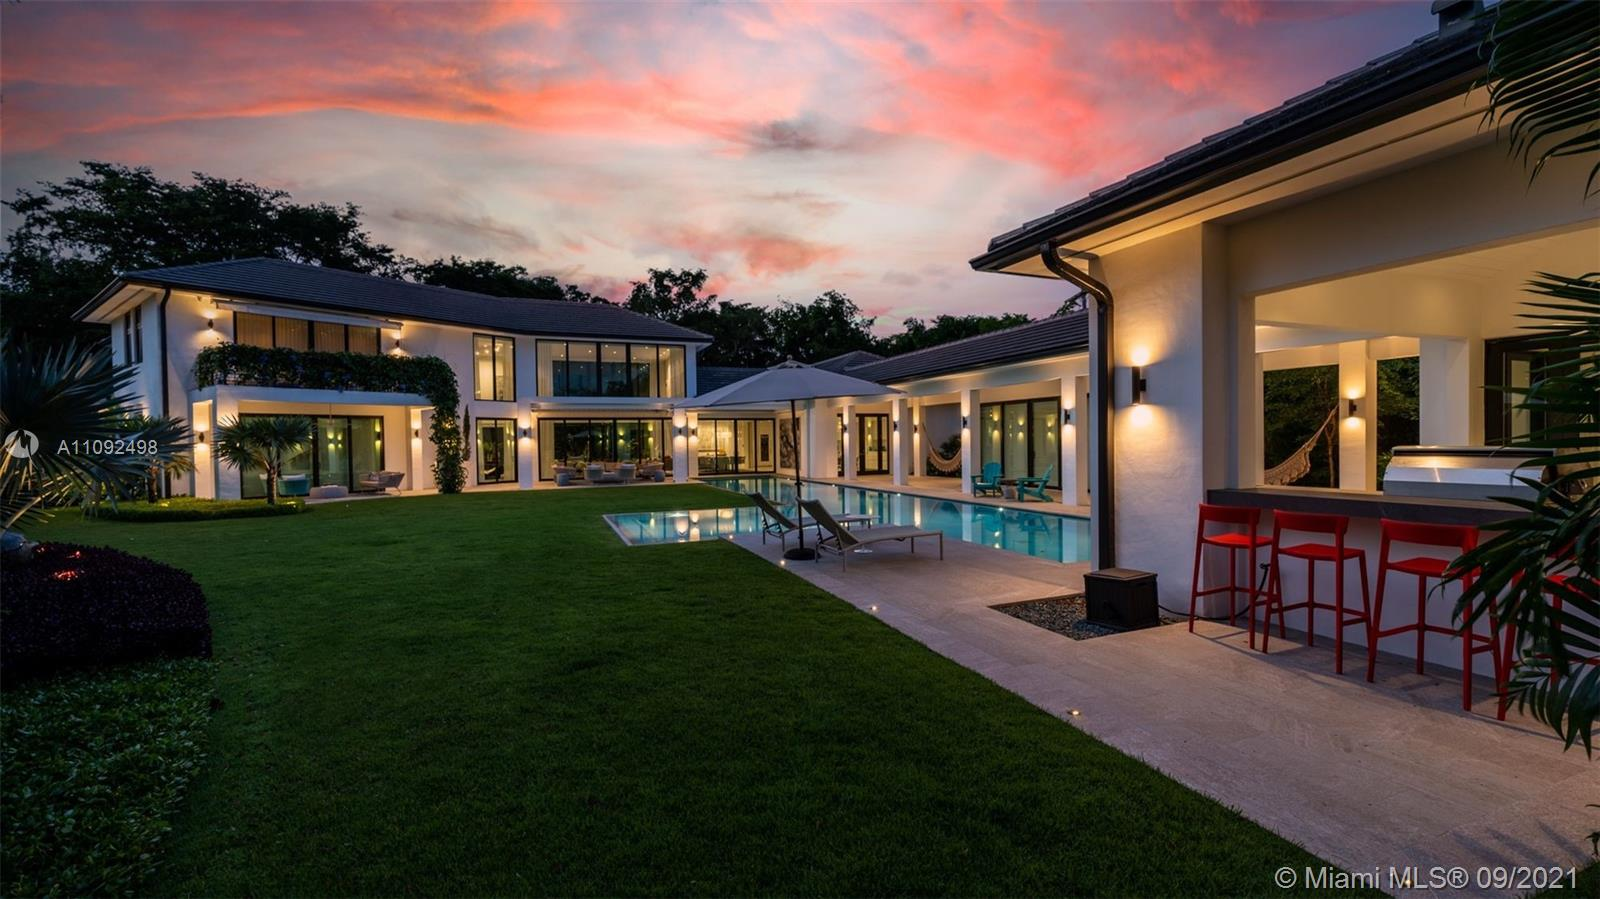 A true one of a kind two story 8,958 sqft Estate in the heart of the Gables. This incredible newly custom built Trophy property is nested on an oversized 25,989 corner lot and surrounded by lush tropical gardens. With a dramatic 23 ft ceiling living room the entire estate has elegantly and meticulously been designed with countless details a sophisticated finishes. this 6 beds/7.5 baths has a state of the art office, gym and private spa w/ sauna & Steam room and semi-olympic 25m  pool and every single feature any exigent buyer could search for. Perfect for entertaining this L shaped property is the perfect harmony between in and outdoor living and custom electric roof, an extraordinary gourmet custom kitchen w/ top of the line appliances,wine cellars,4 Cars indoor garage and full smart home